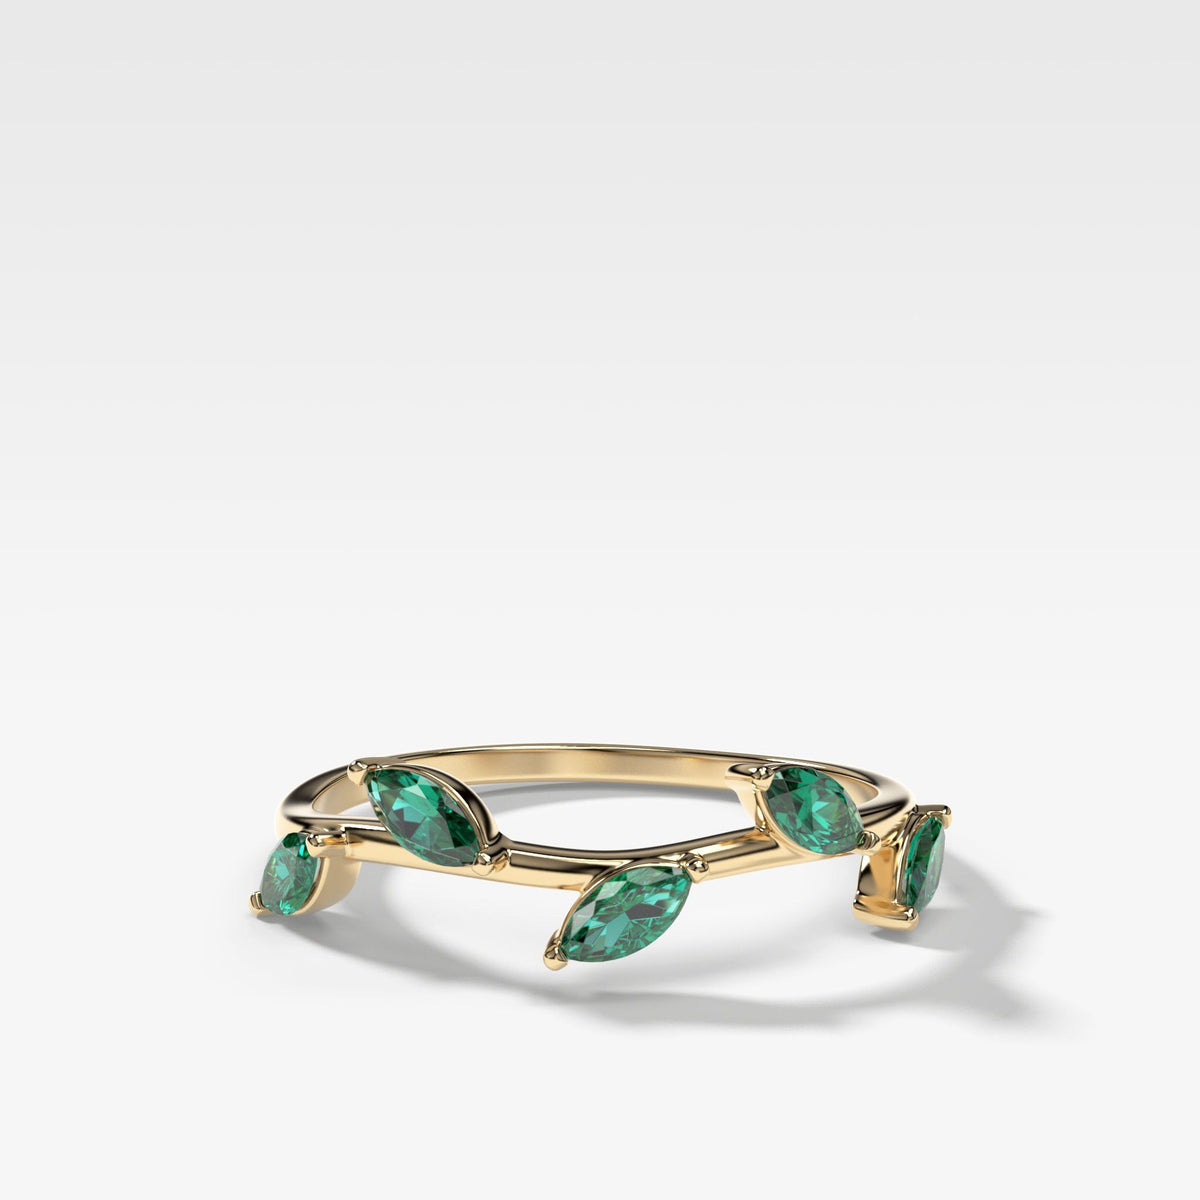 Laurel Marquise Band With Green Emeralds In Yellow Gold By Good Stone